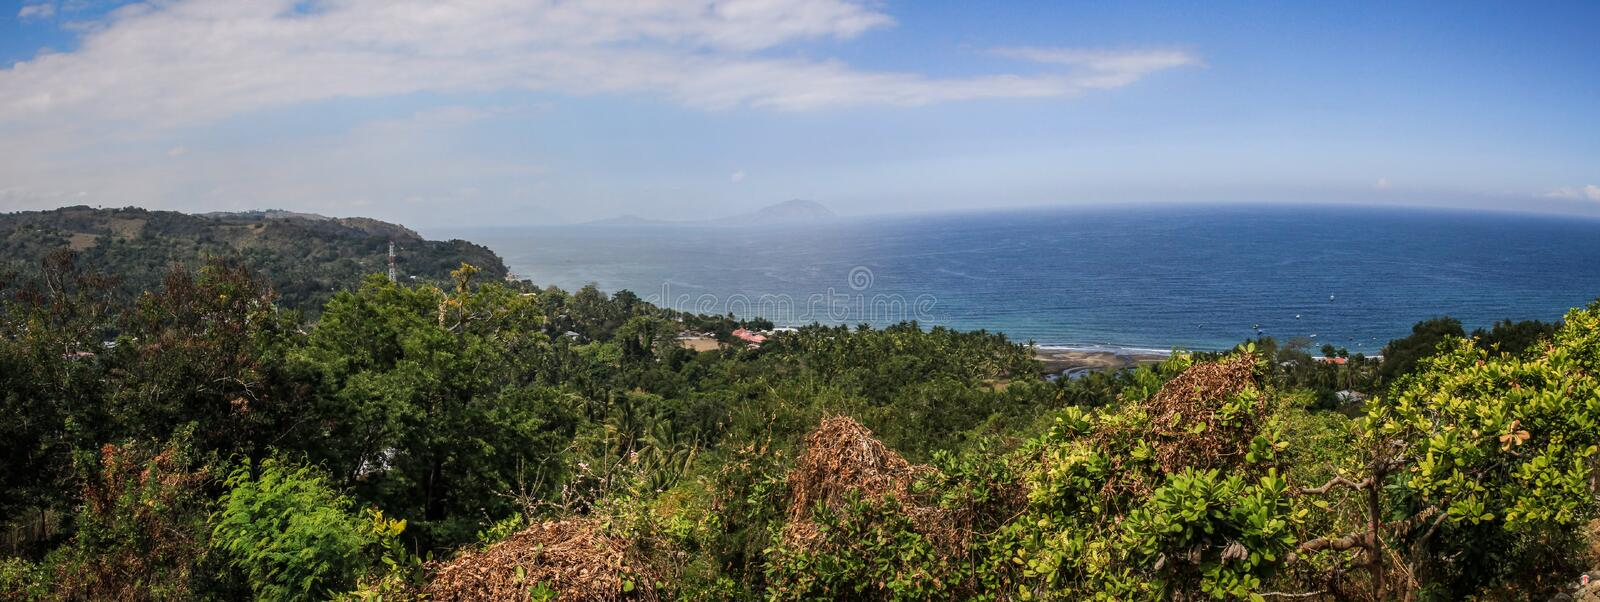 Panorama on beautiful bay near moni, Nusa Tenggara, flores island, Indonesia royalty free stock image